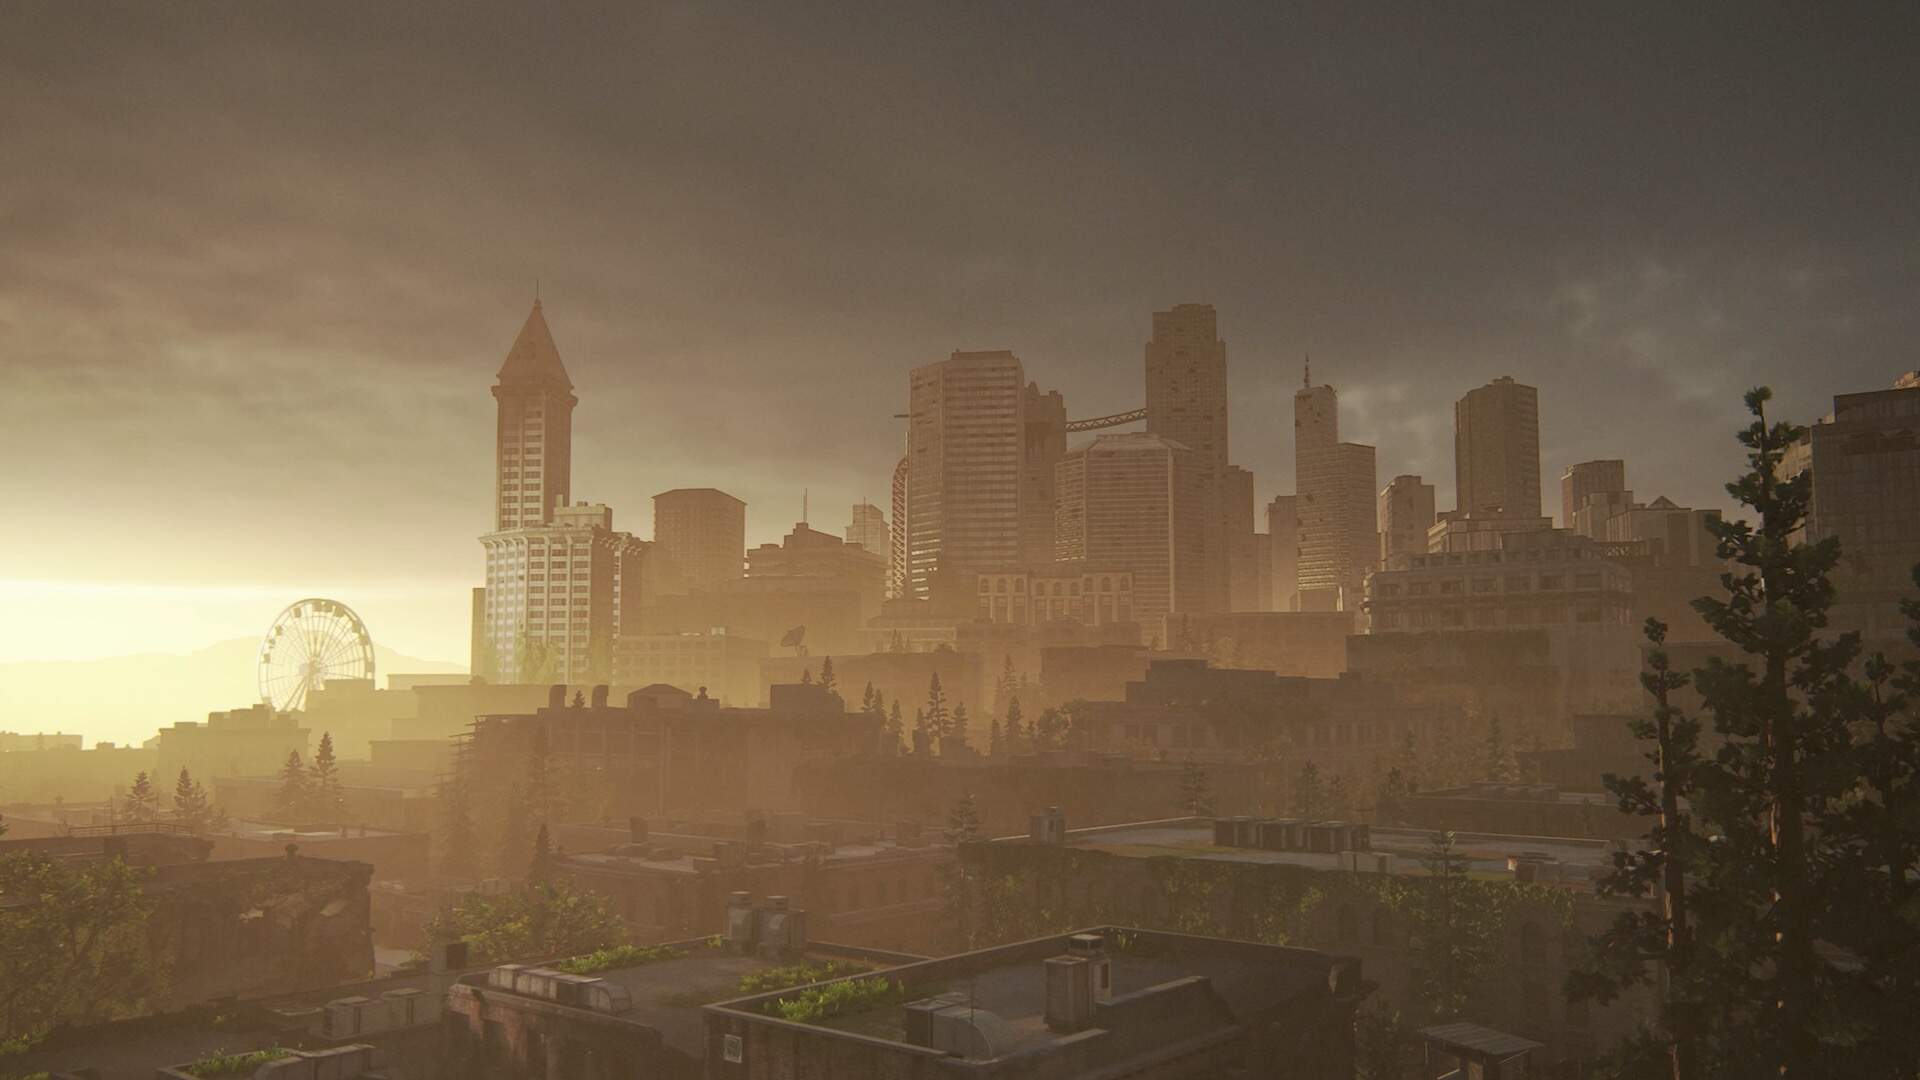 The Last of Us Part 2 Developers Talk About Walking Ellie's Path Through the Real Seattle